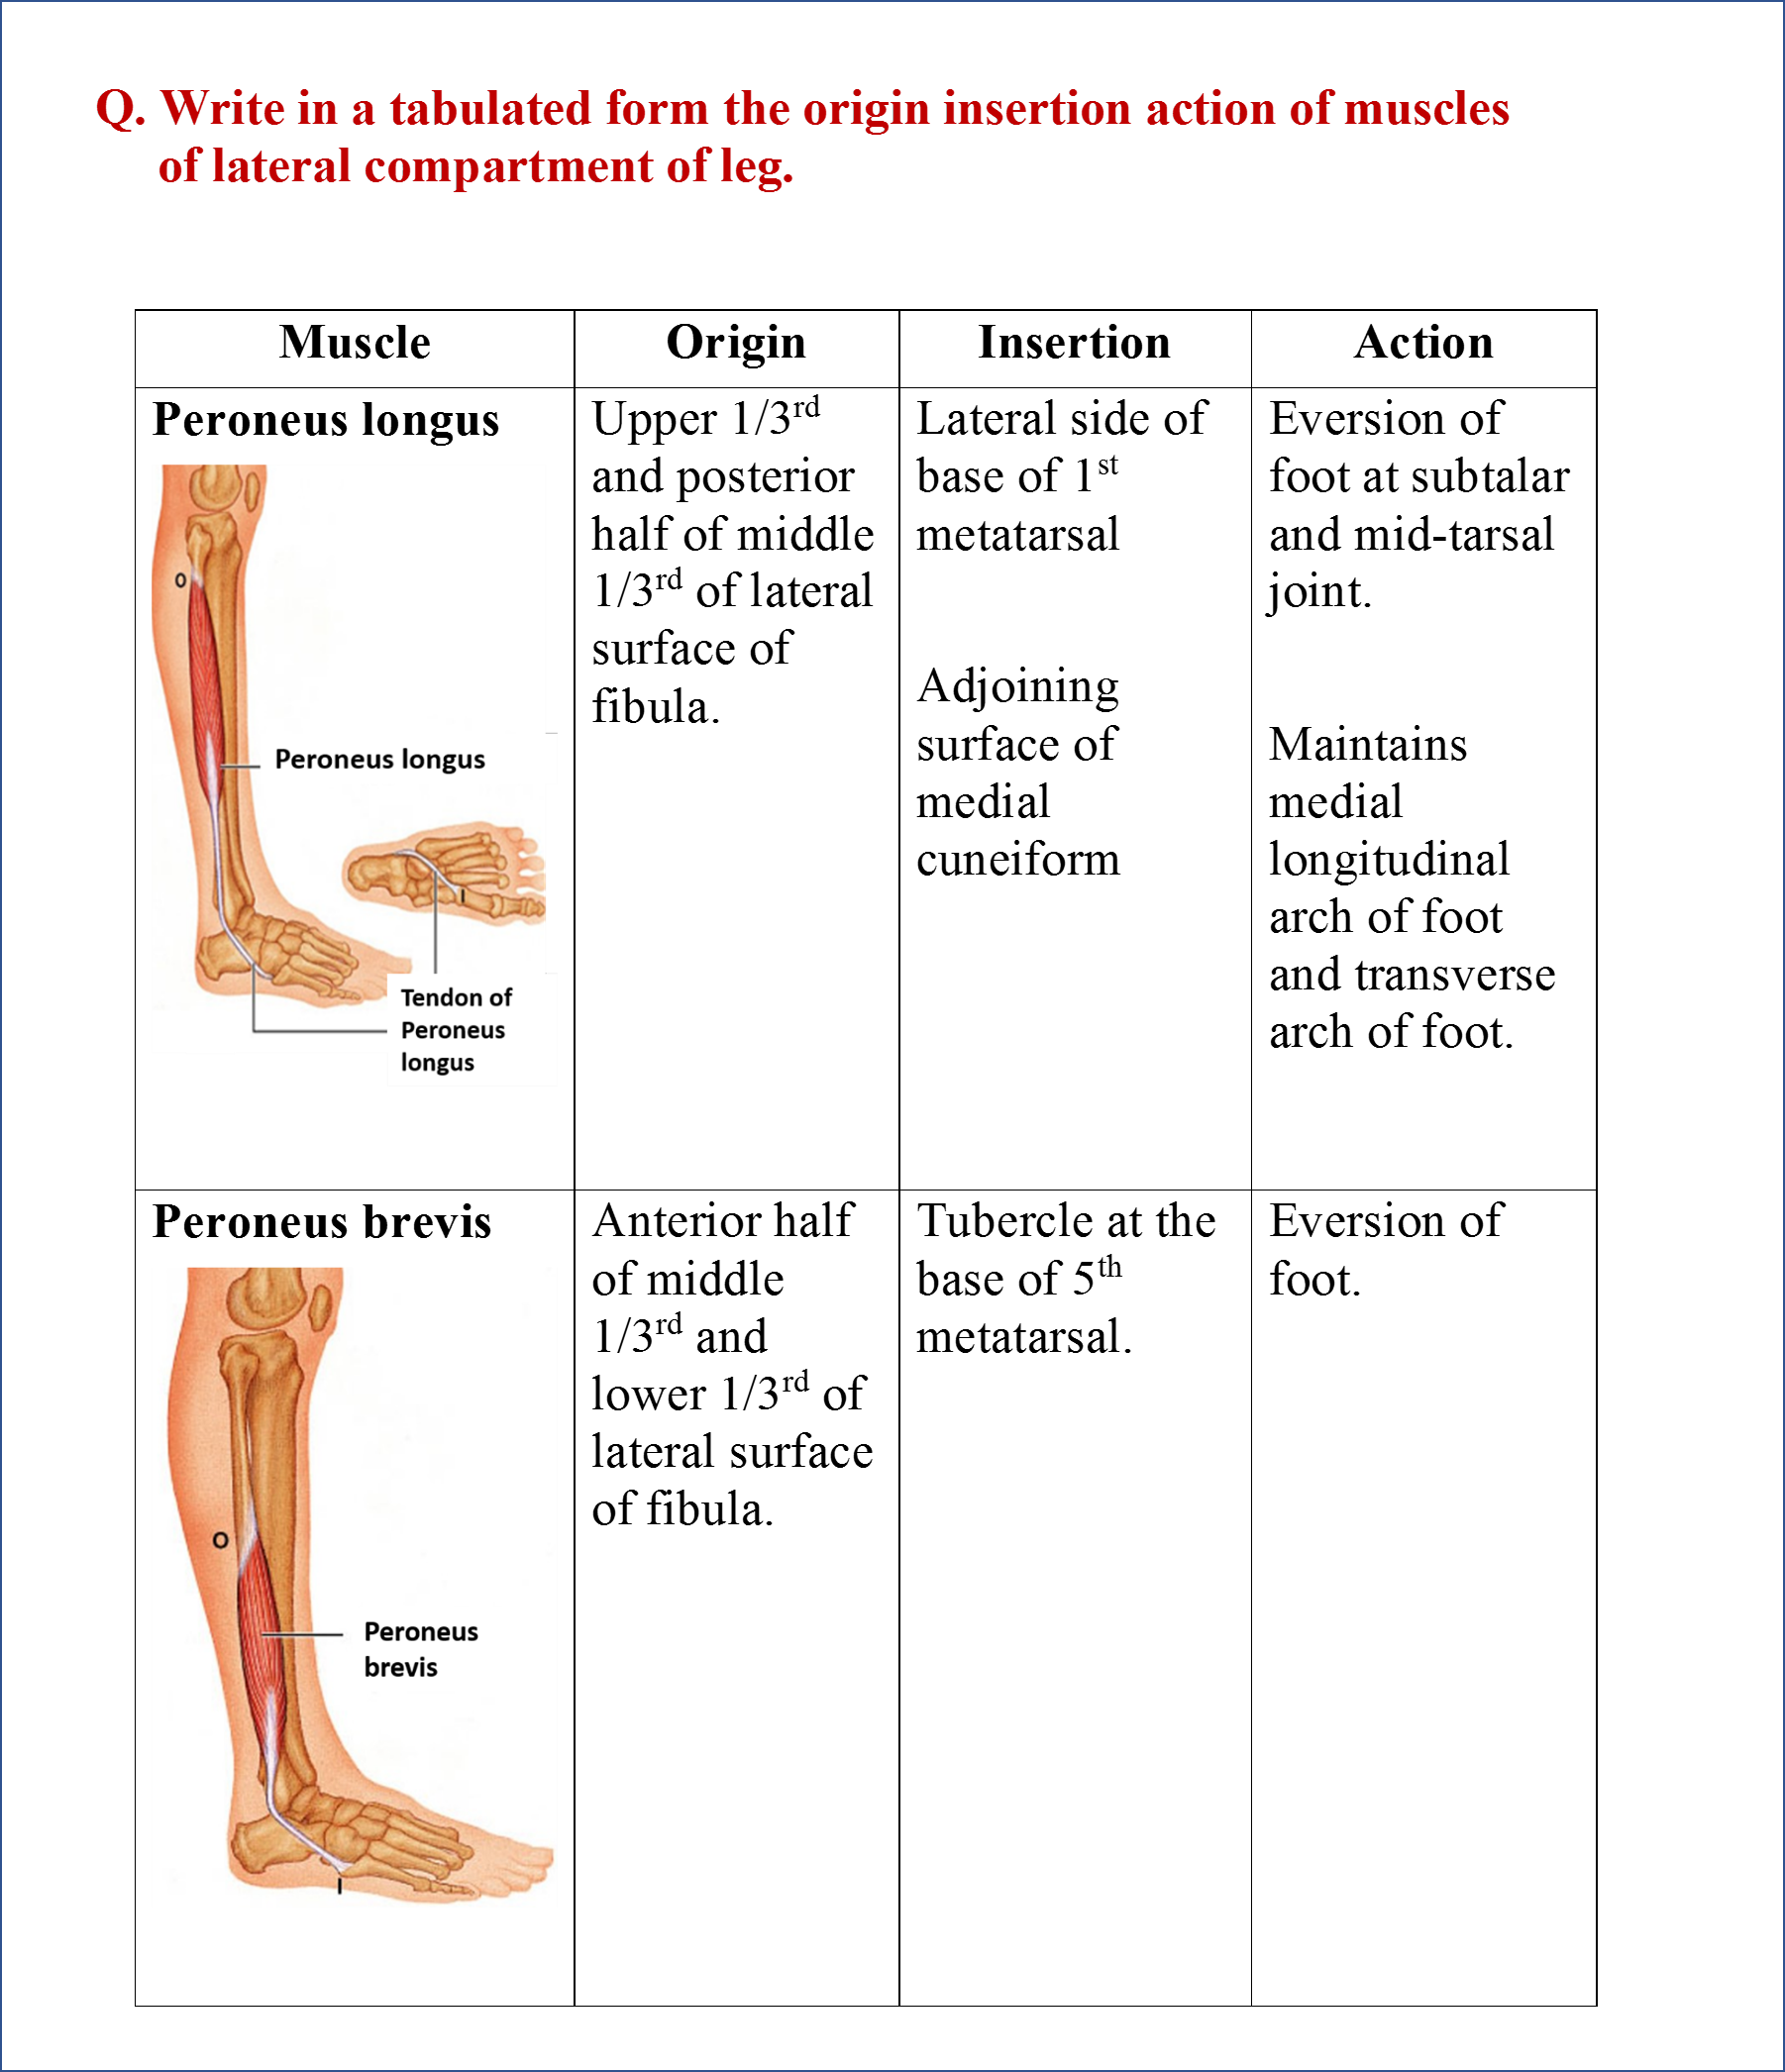 Leg Anterior Lateral And Posterior Compartments